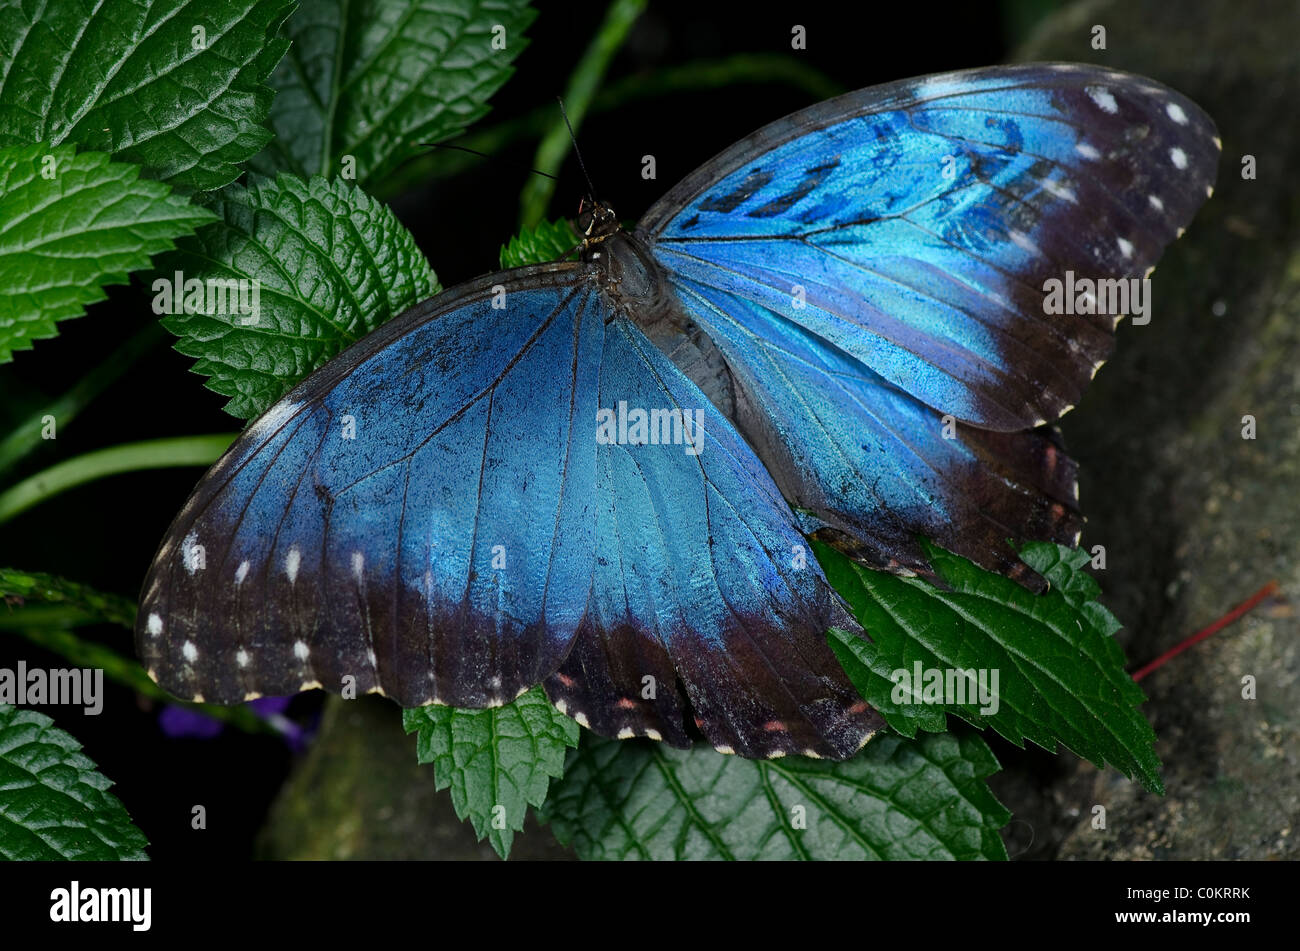 A Common Blue Morpho Butterfly, of the Nymphalidae family - Stock Image